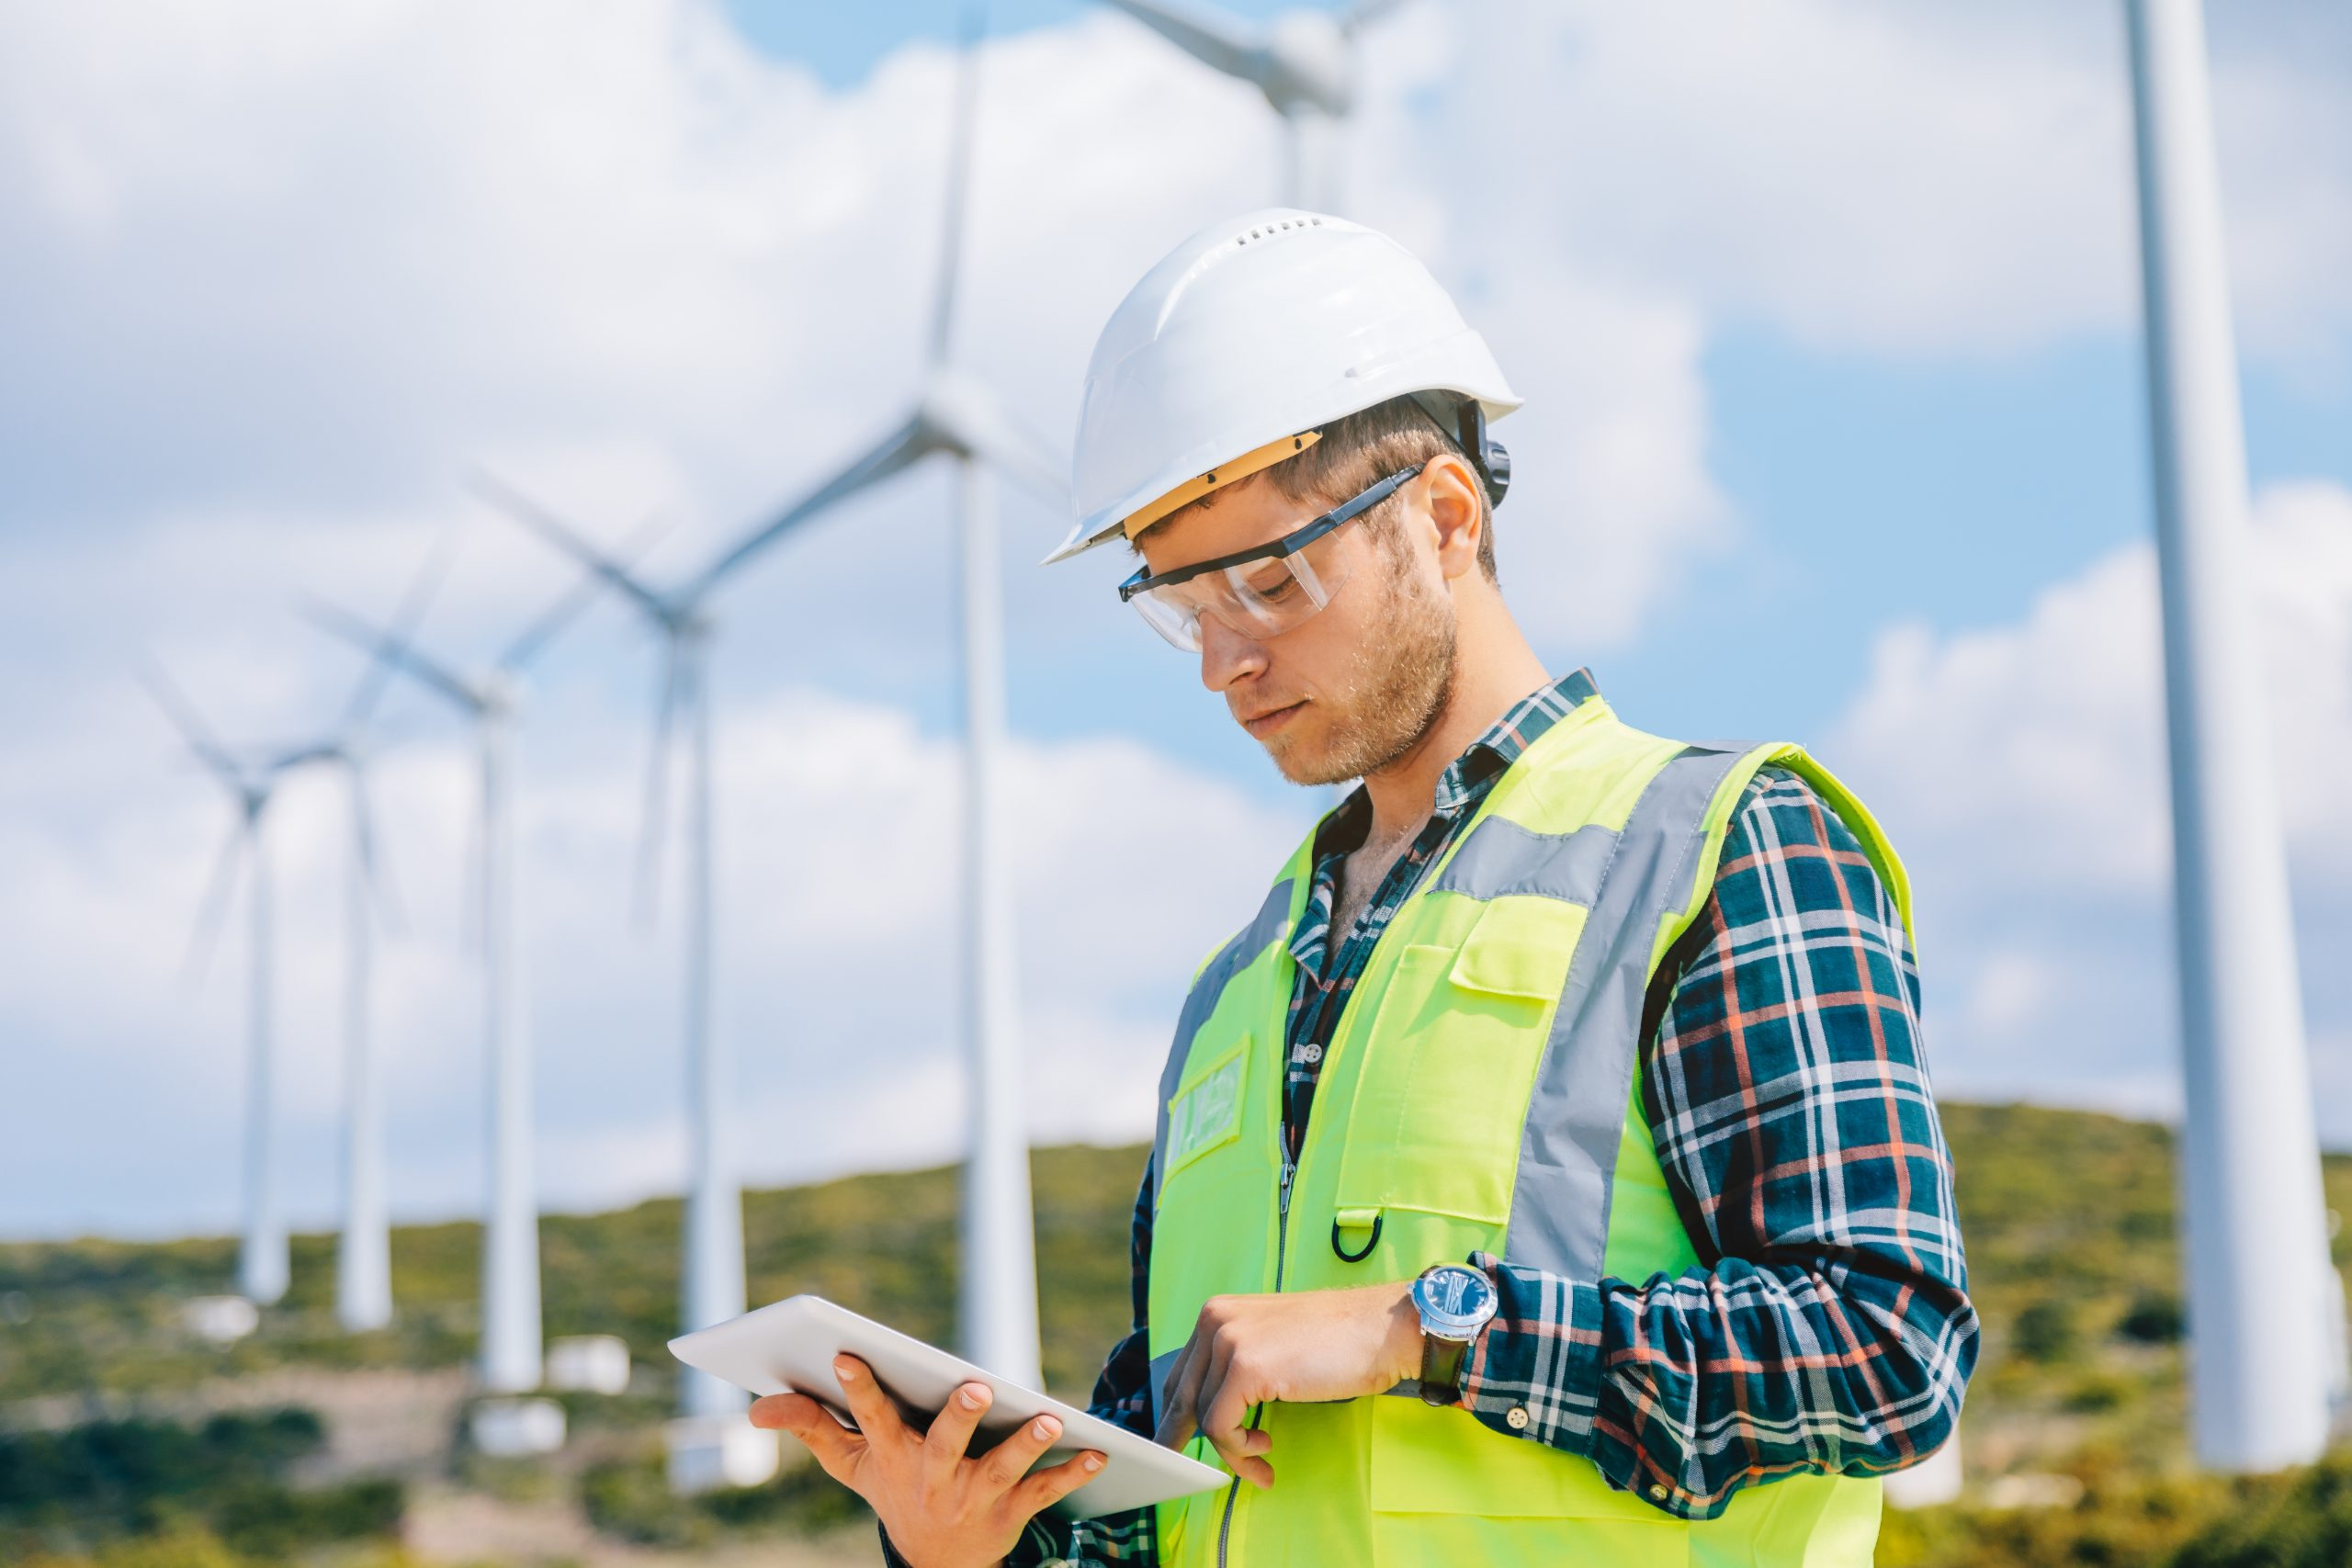 Employee in a safety vest and hard hat working on a tablet on a wind and energy farm